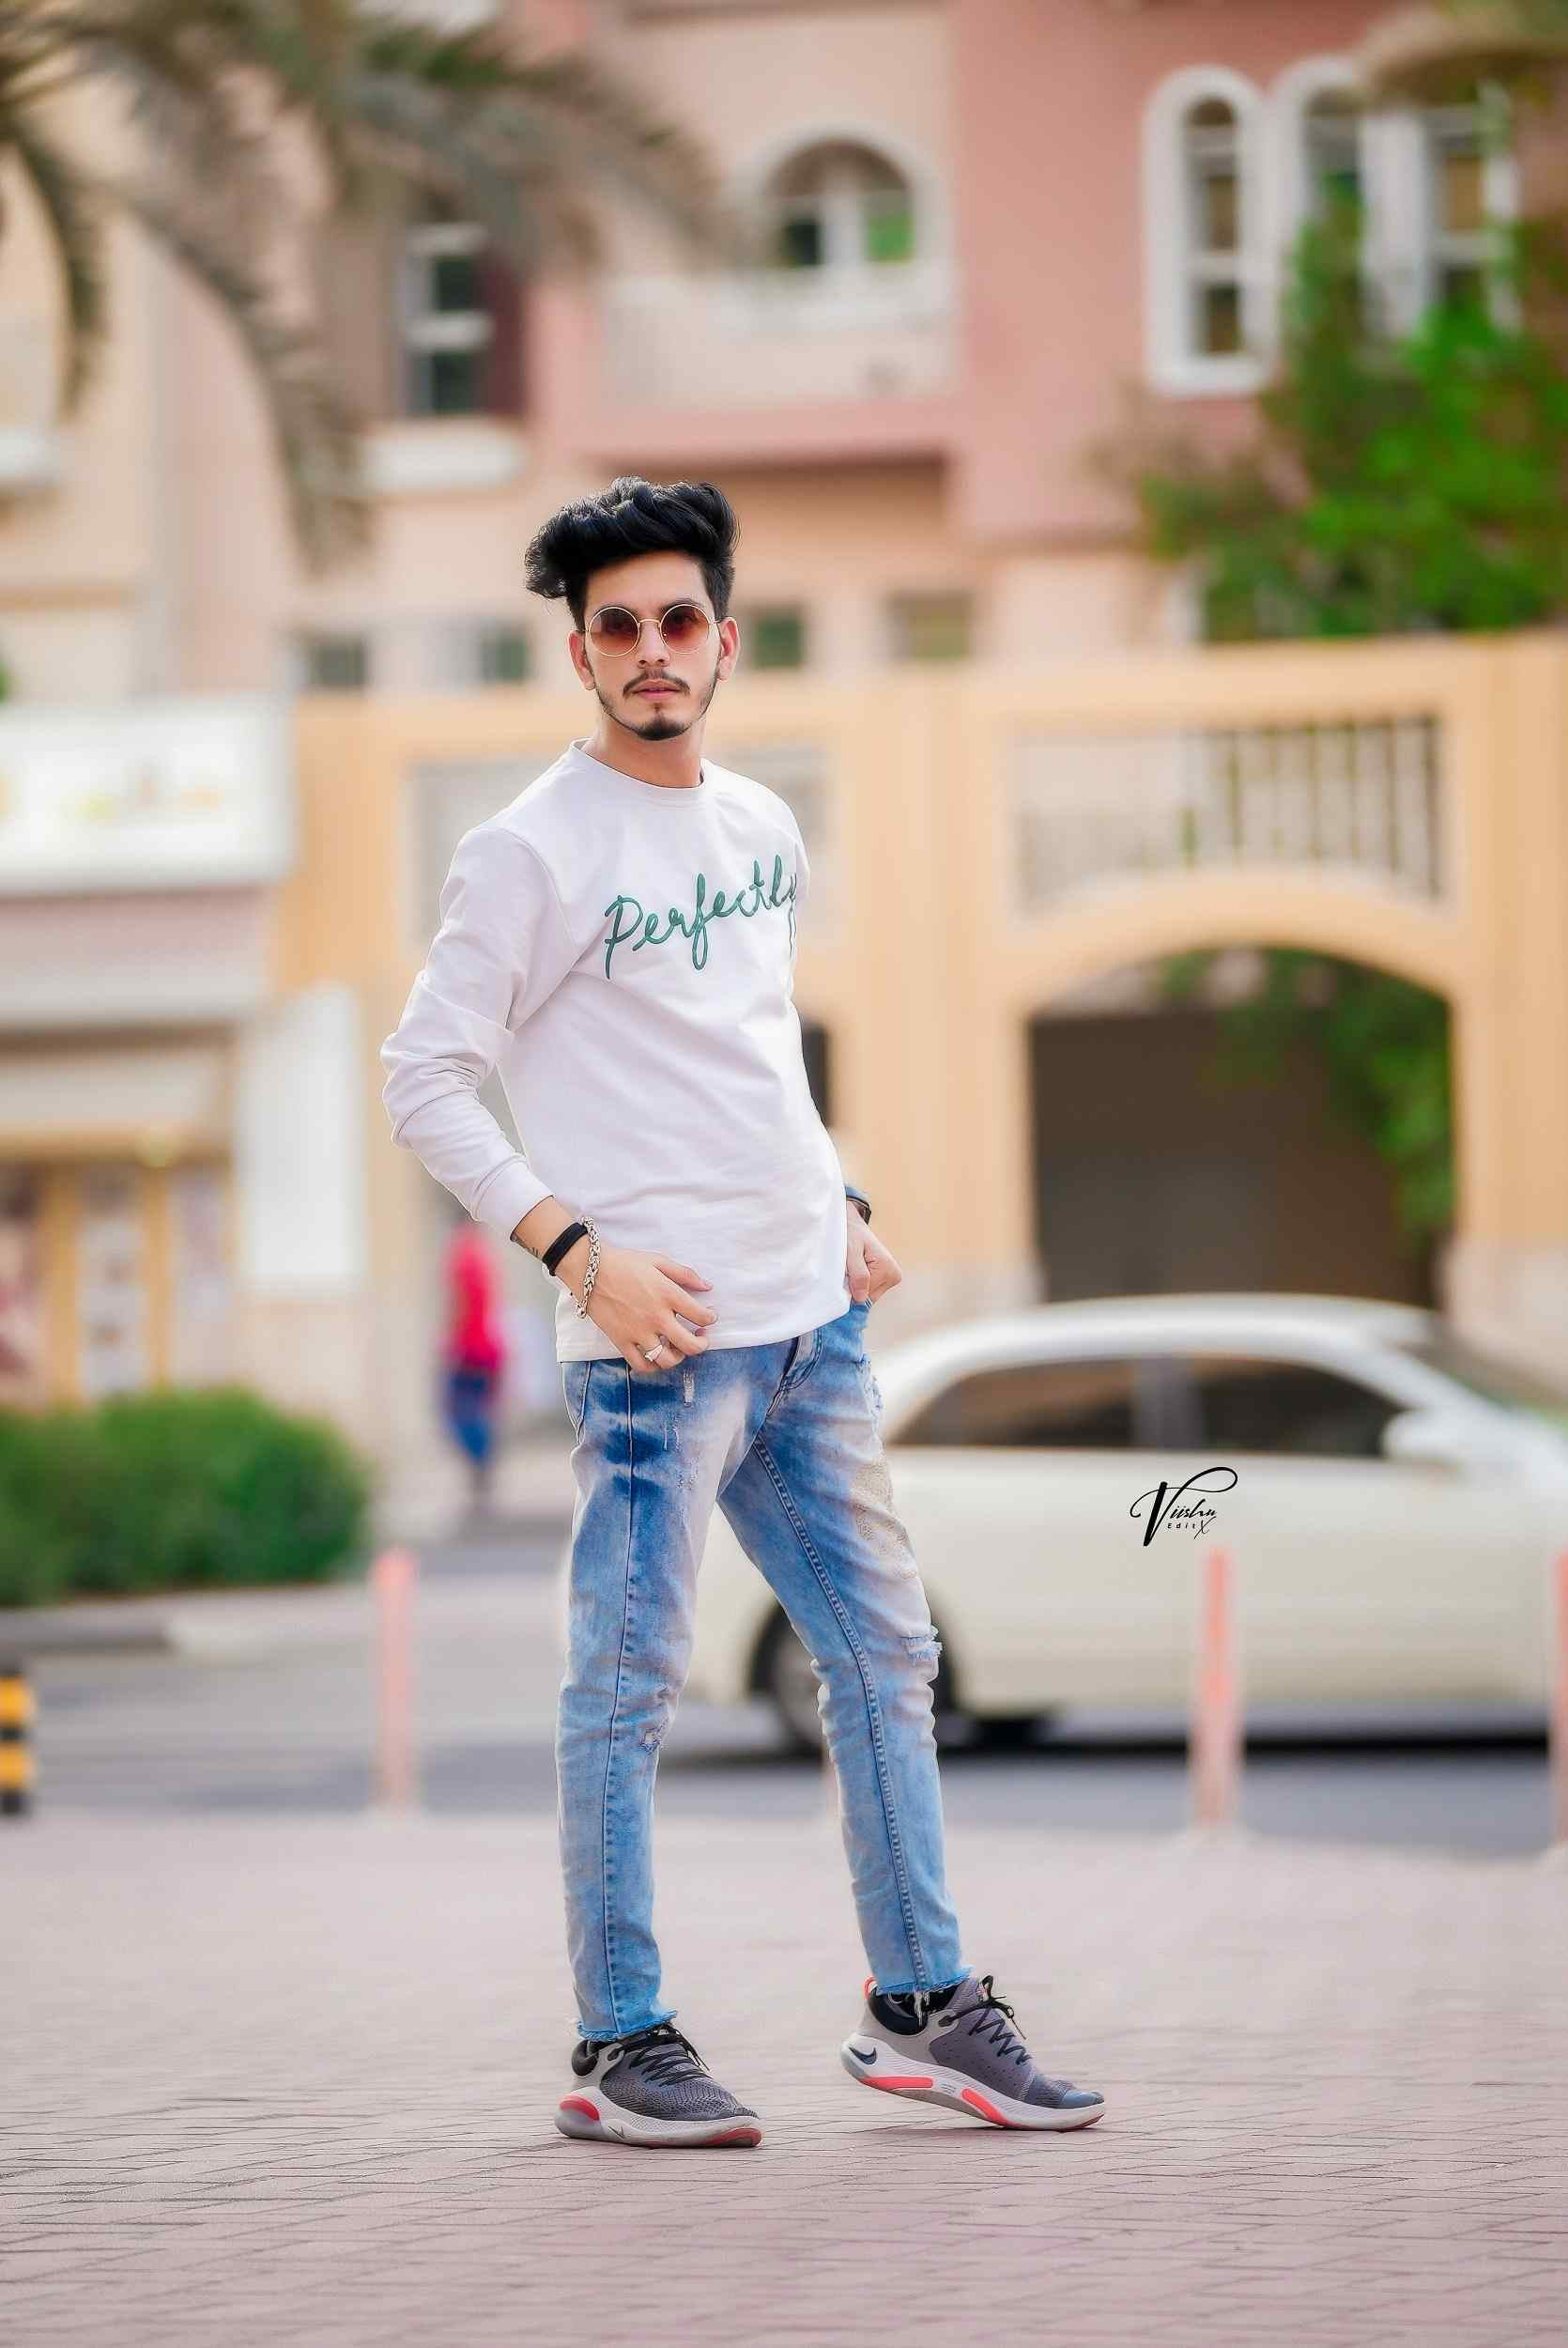 Avipanchal49 – Avdhesh Panchal – Instagram Influencer – Full Name, Age, City – Watch Complete Details About Avdhesh Panchal Shared by Him